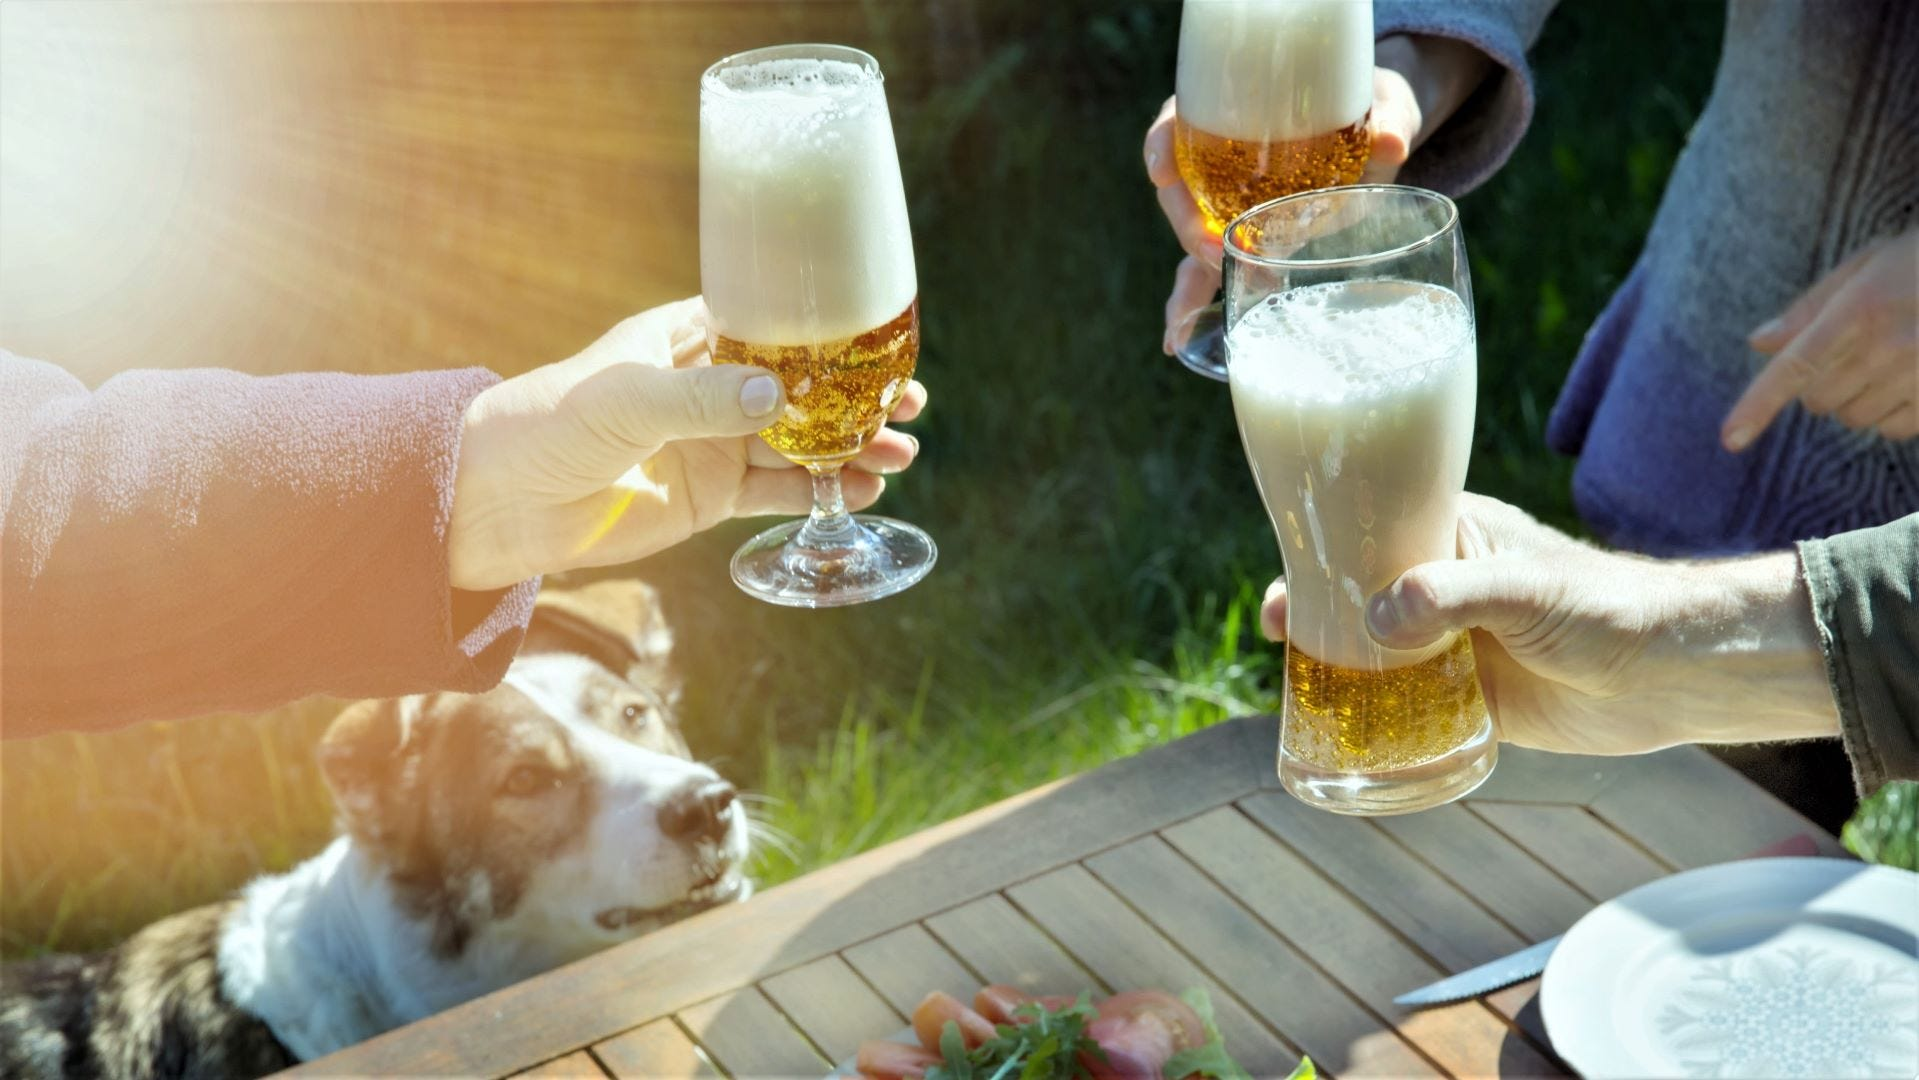 A dog looking at three people toasting with glasses of beer.